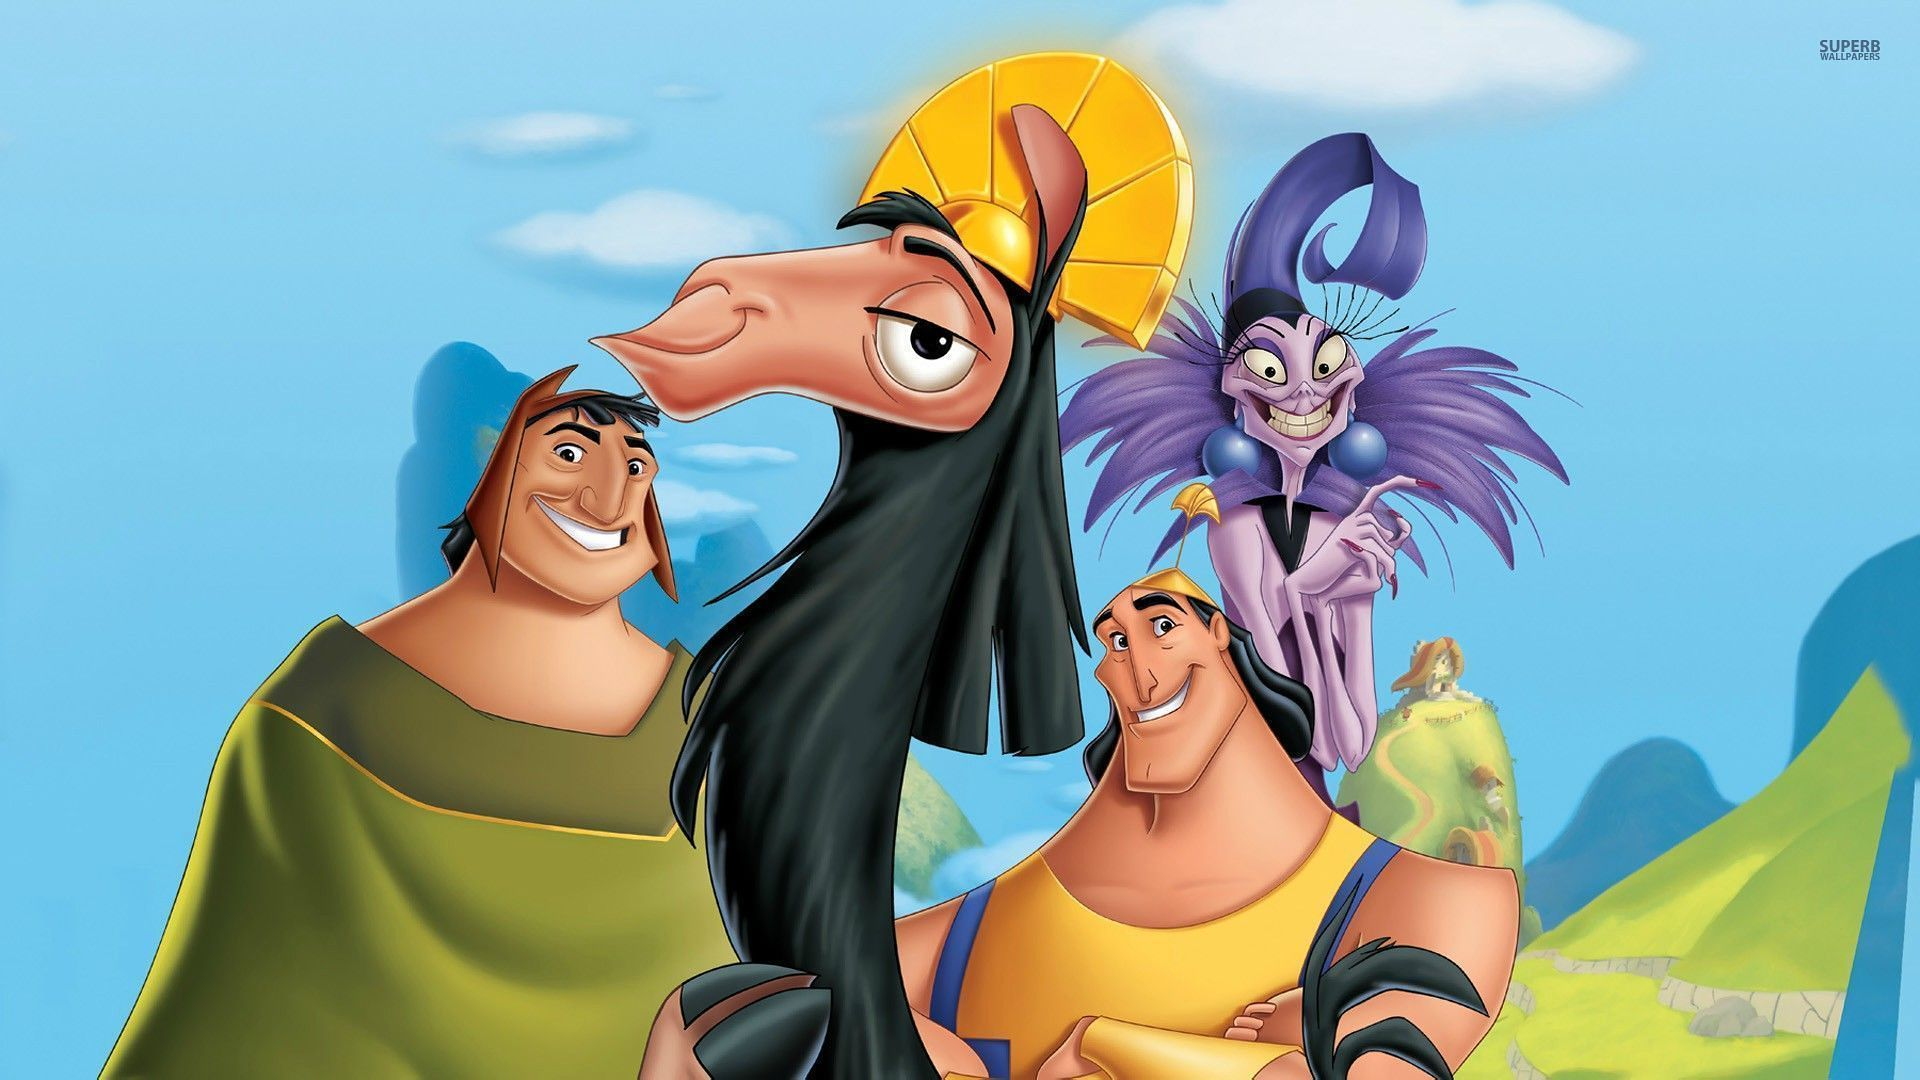 Walt Disney fonds d'écran - The Emperor's New Groove